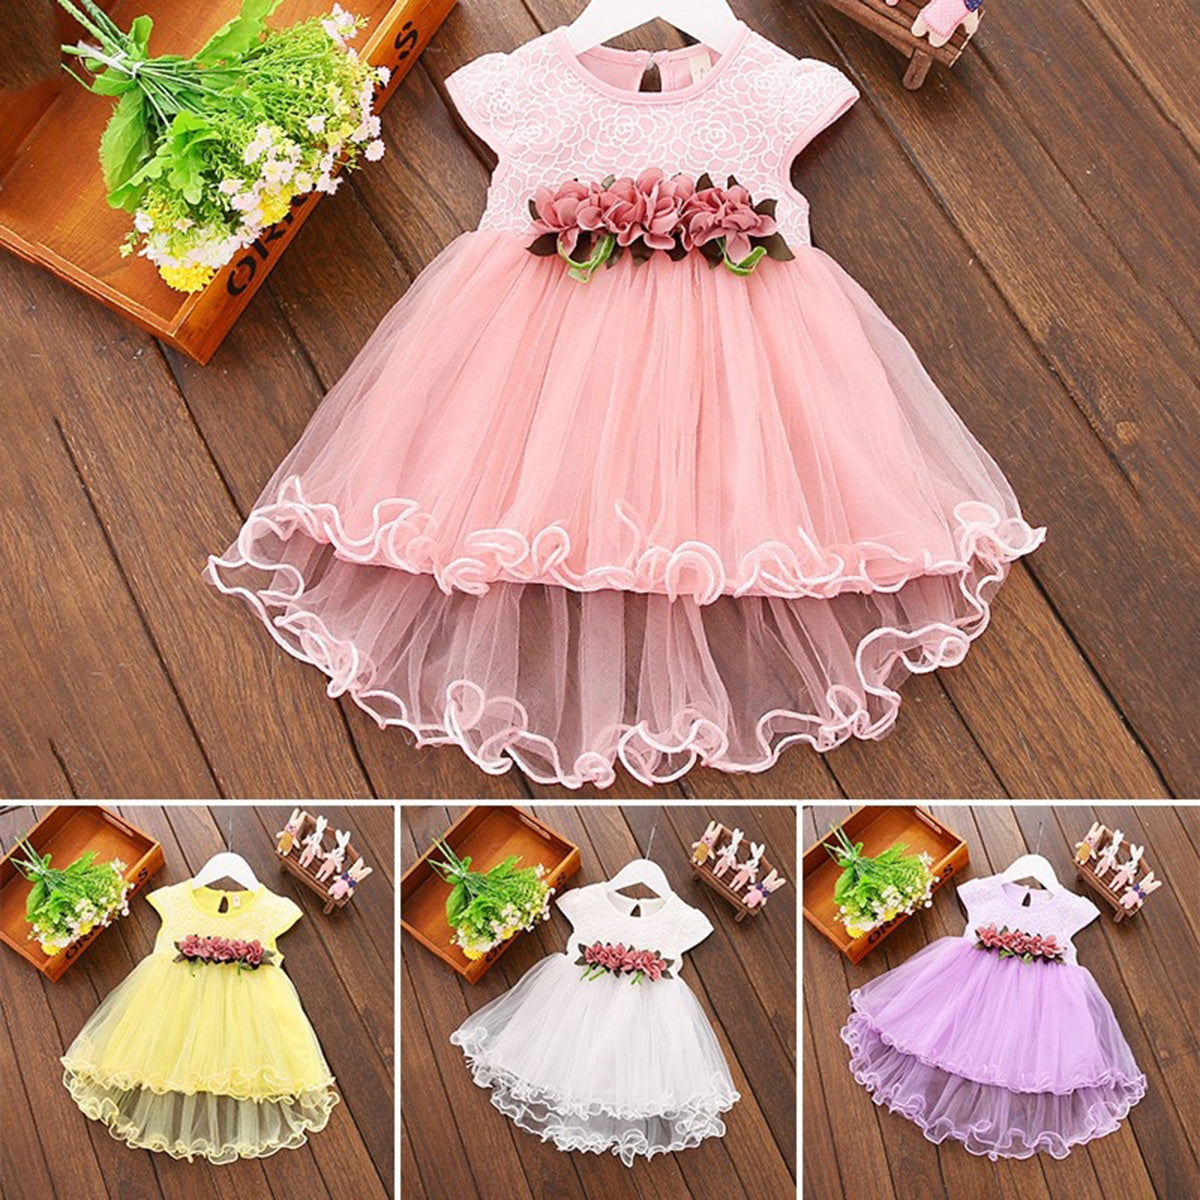 Cute Baby Princess Dress with Floral Ornaments